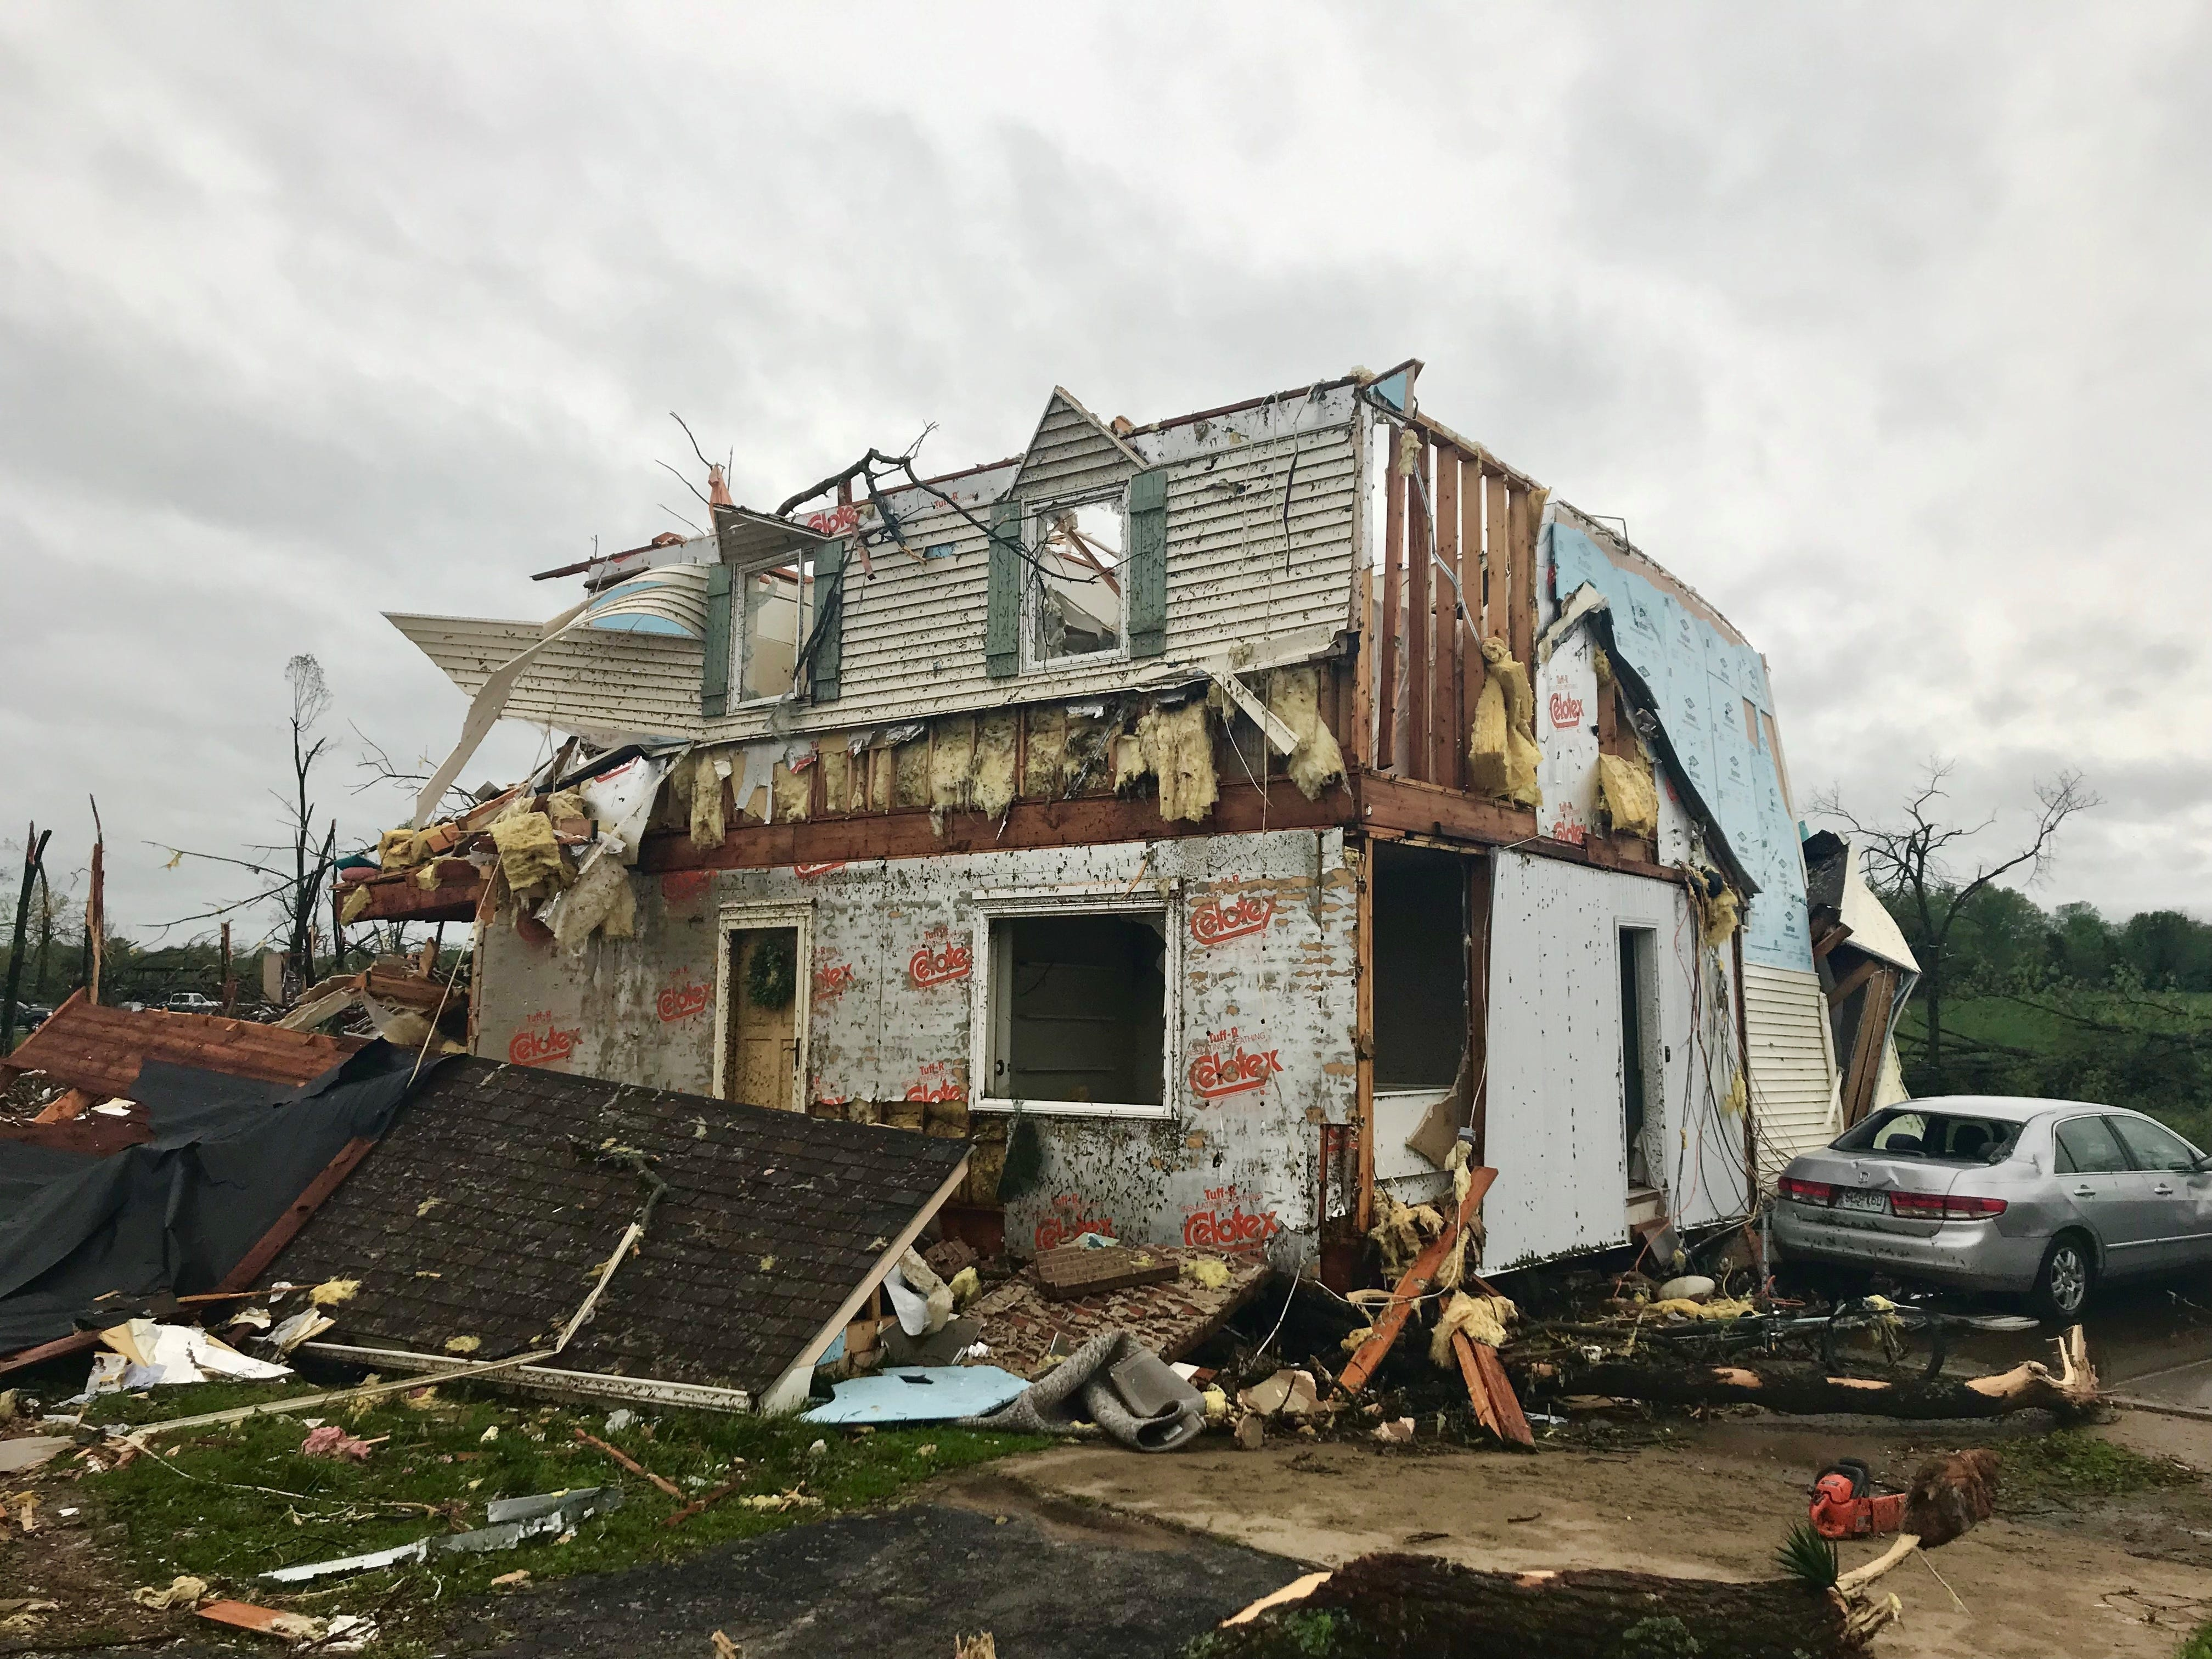 Rogersville home destroyed while family away seeking cancer treatment